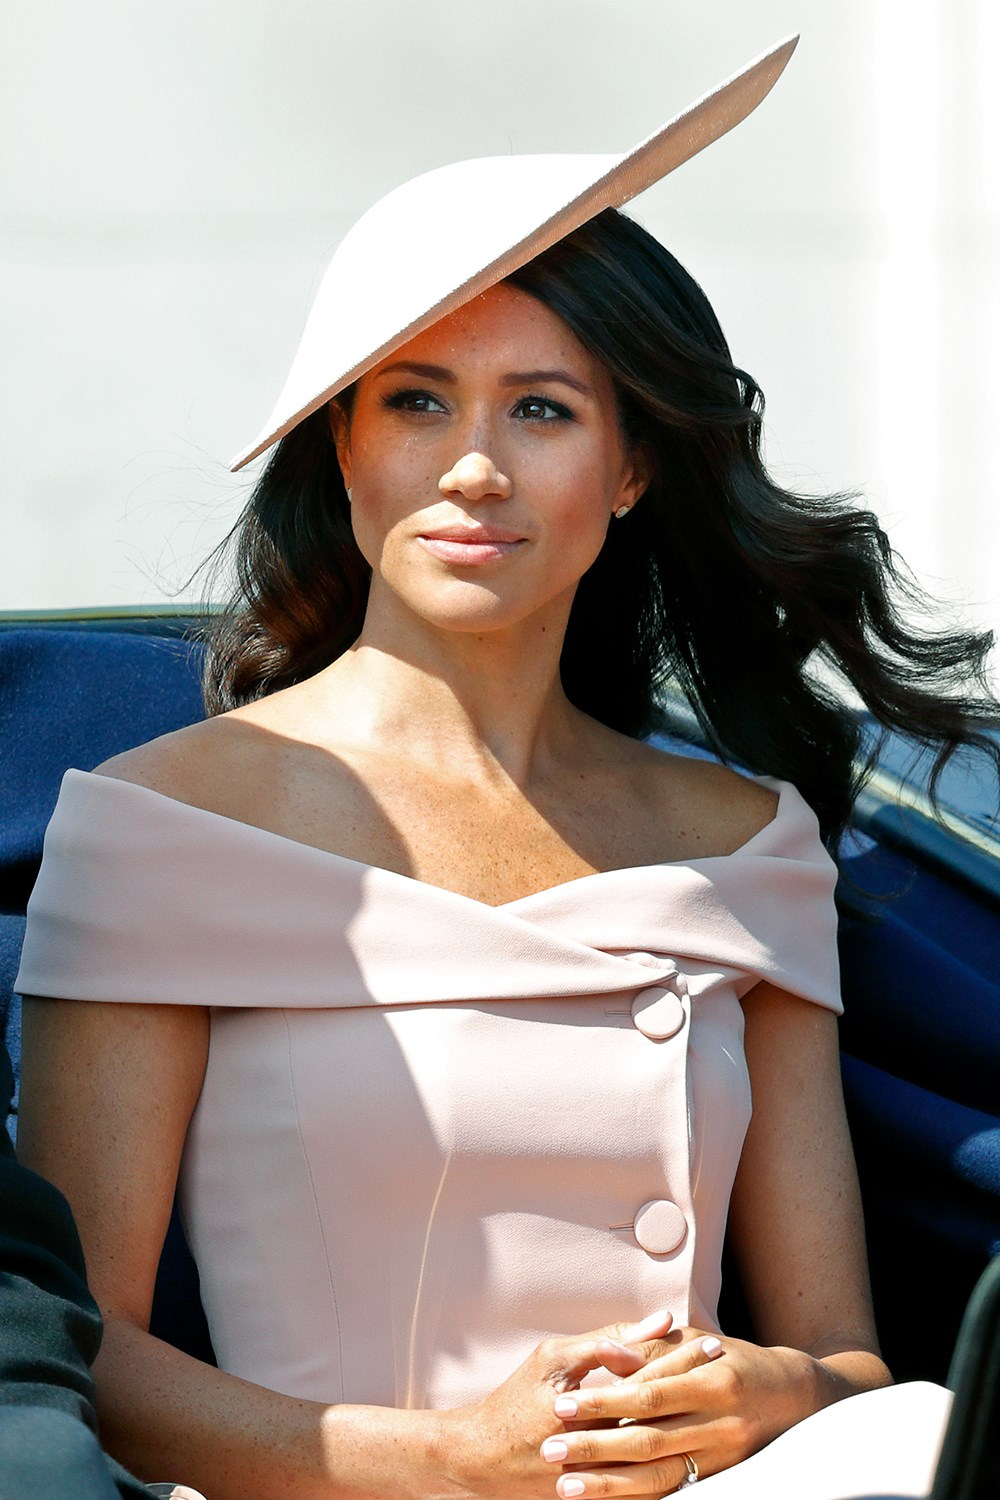 Meghan Markle Nude - All of Her Most Naked Moments | New